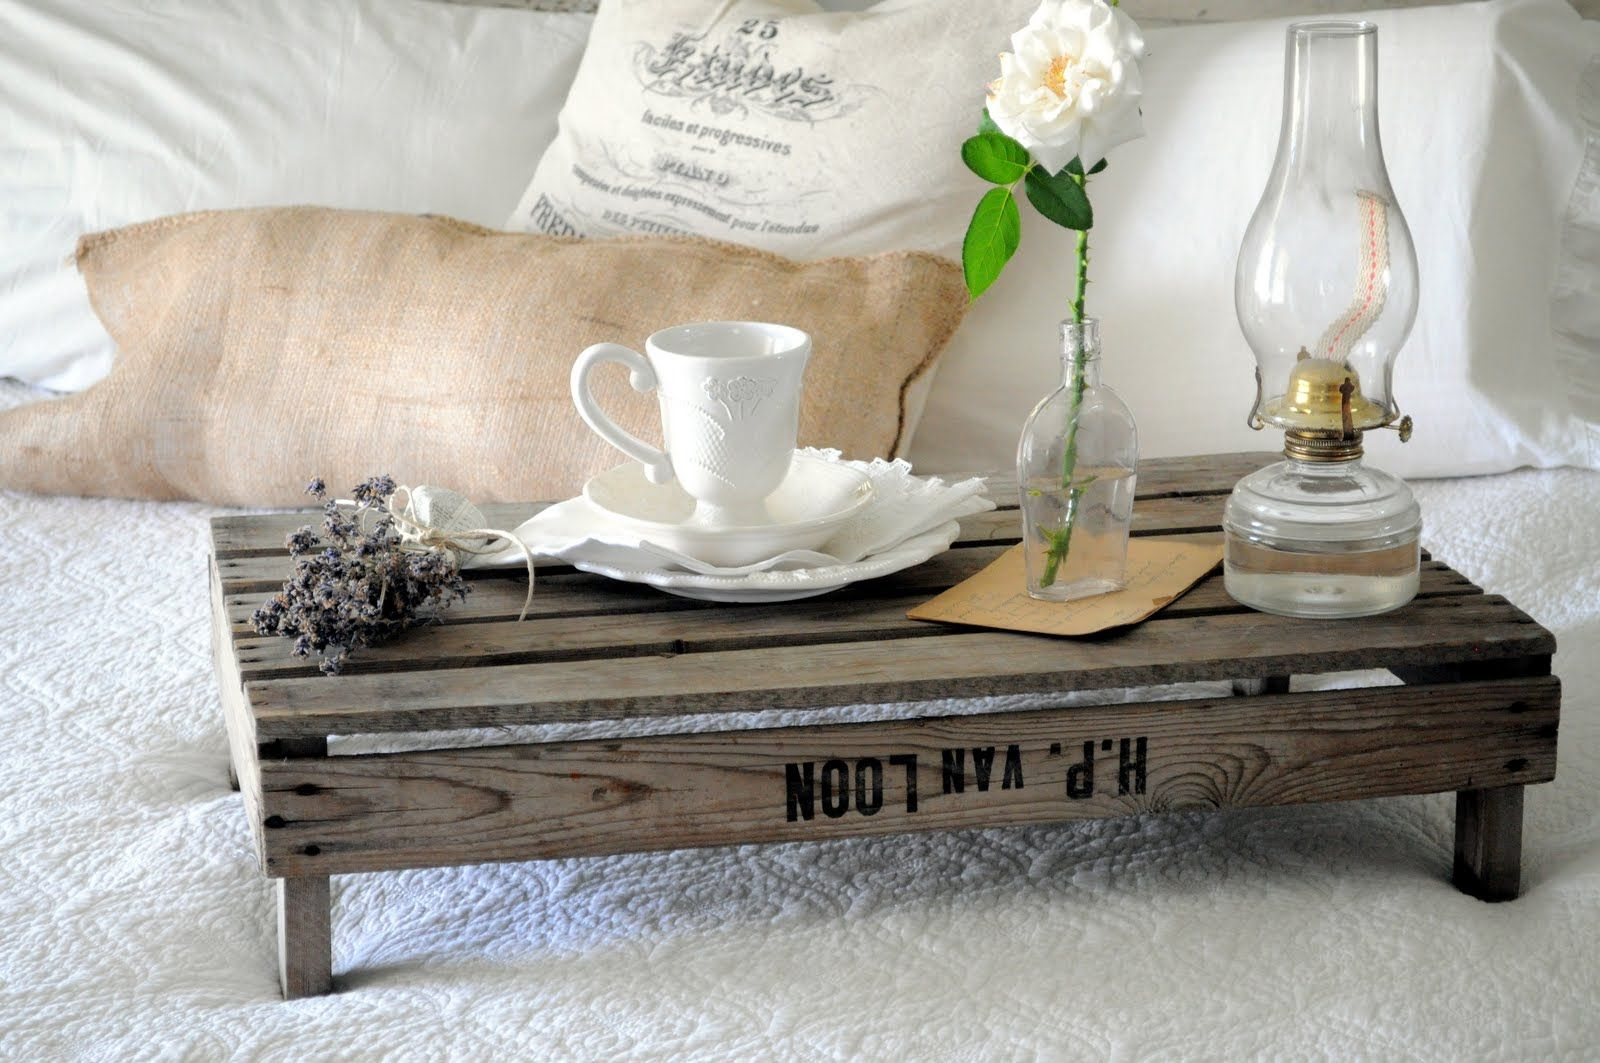 Overbed table made of wooden pallet